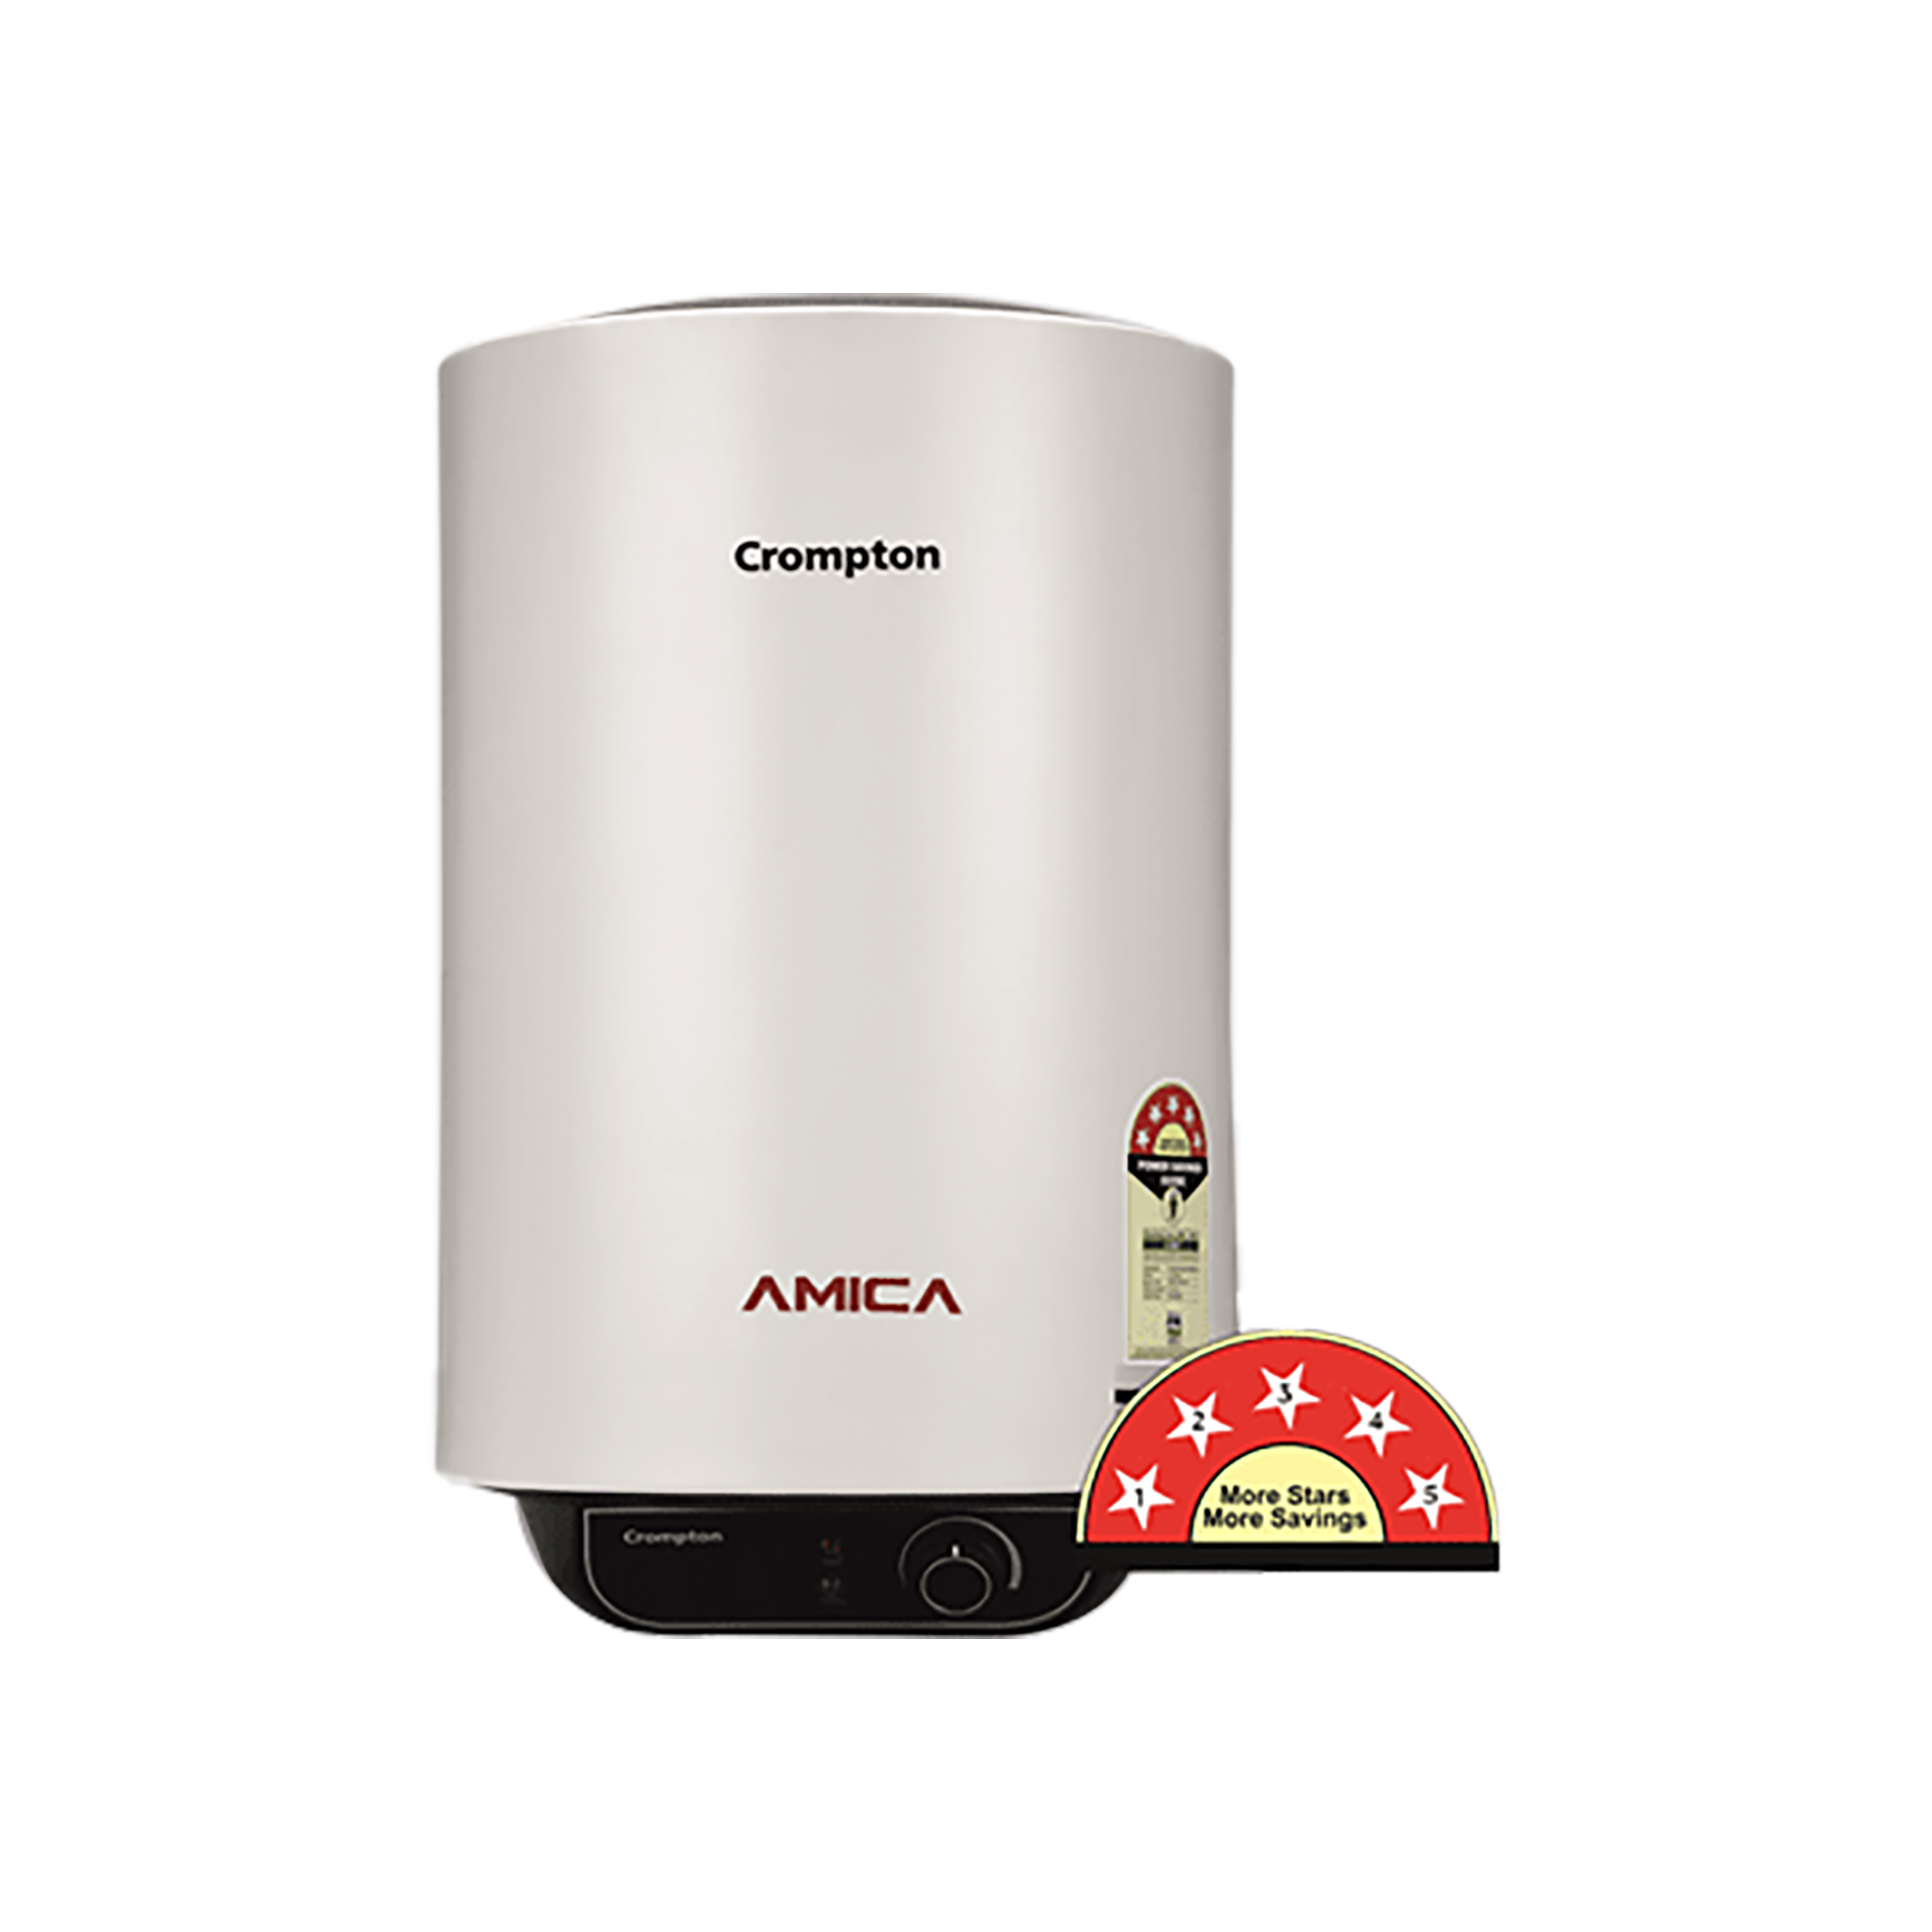 Crompton Amica 25 Litres 5 Star Storage Water Geyser (2000 Watts, ASWH-2025, White)_1